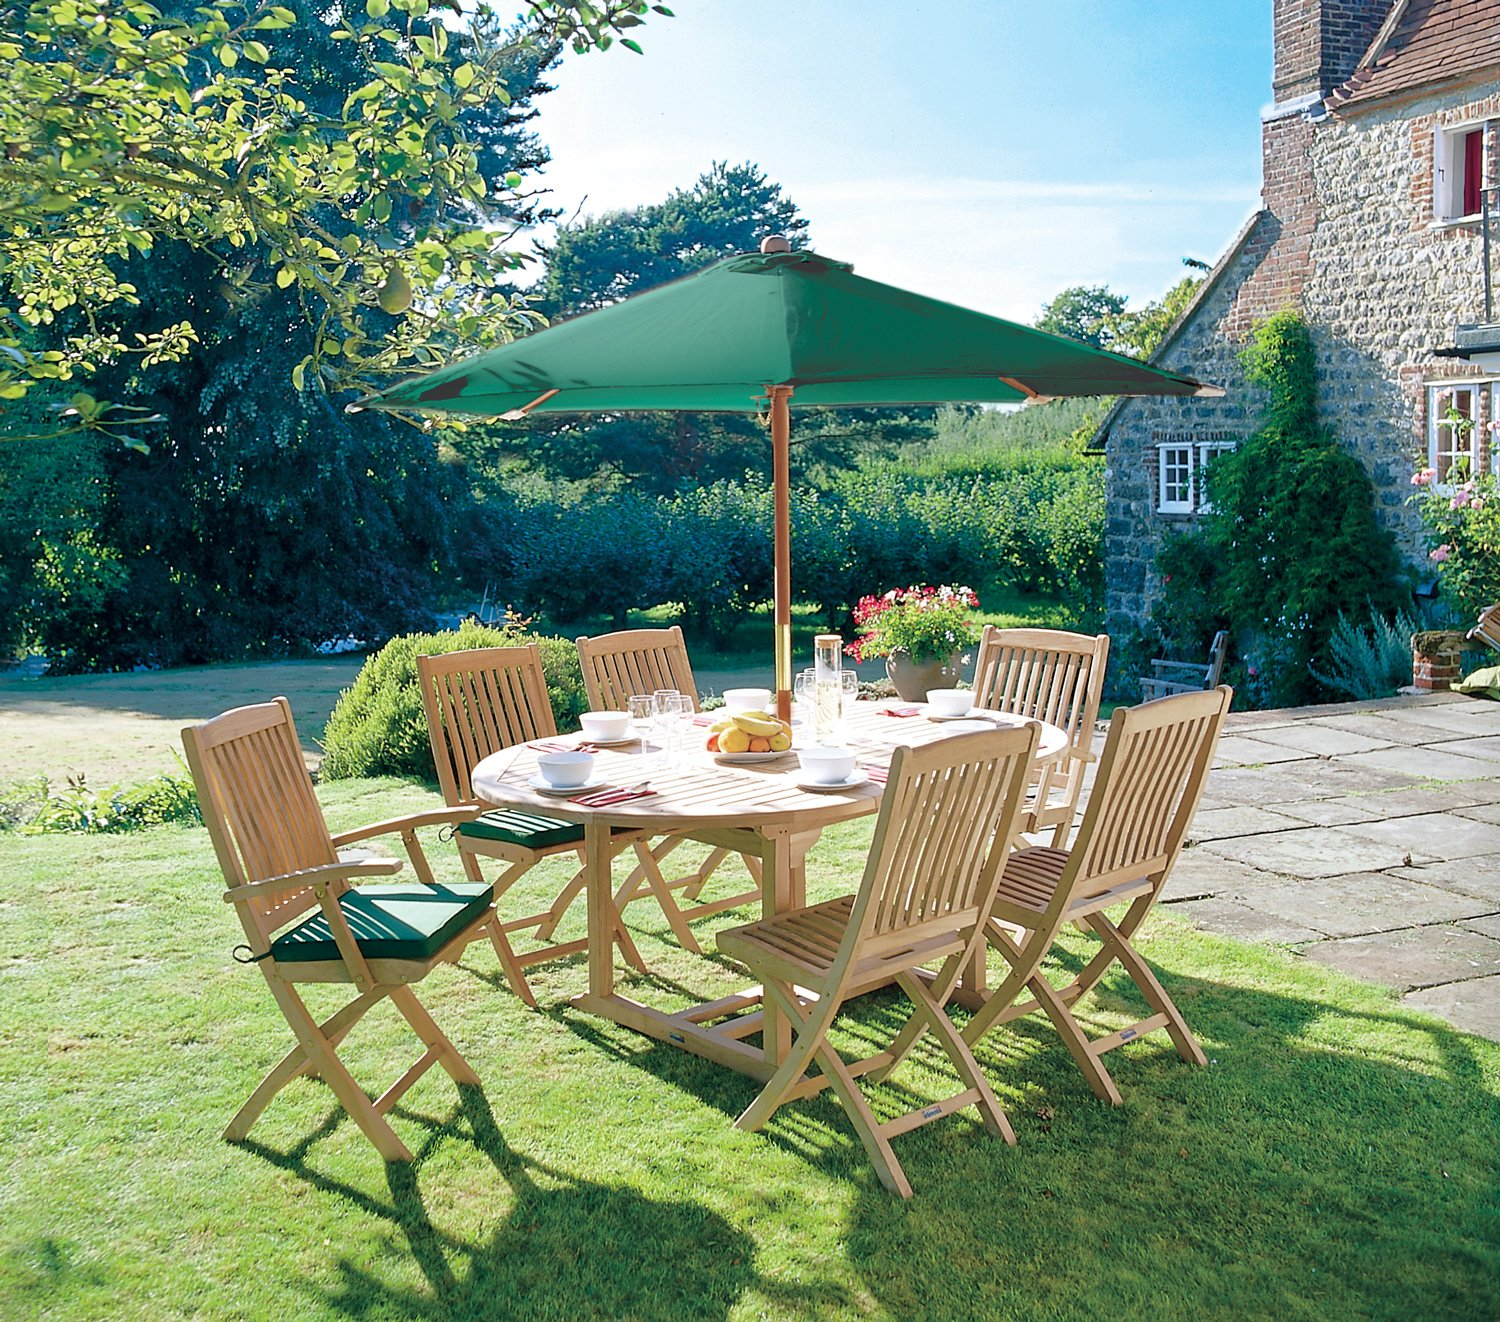 Cotswold 6 Seater Garden Table and Chairs Set with Green Cushions  FSC  Parasol and Base   Jati Brand  Quality   Value  Amazon co uk  Garden    Outdoors. Cotswold 6 Seater Garden Table and Chairs Set with Green Cushions